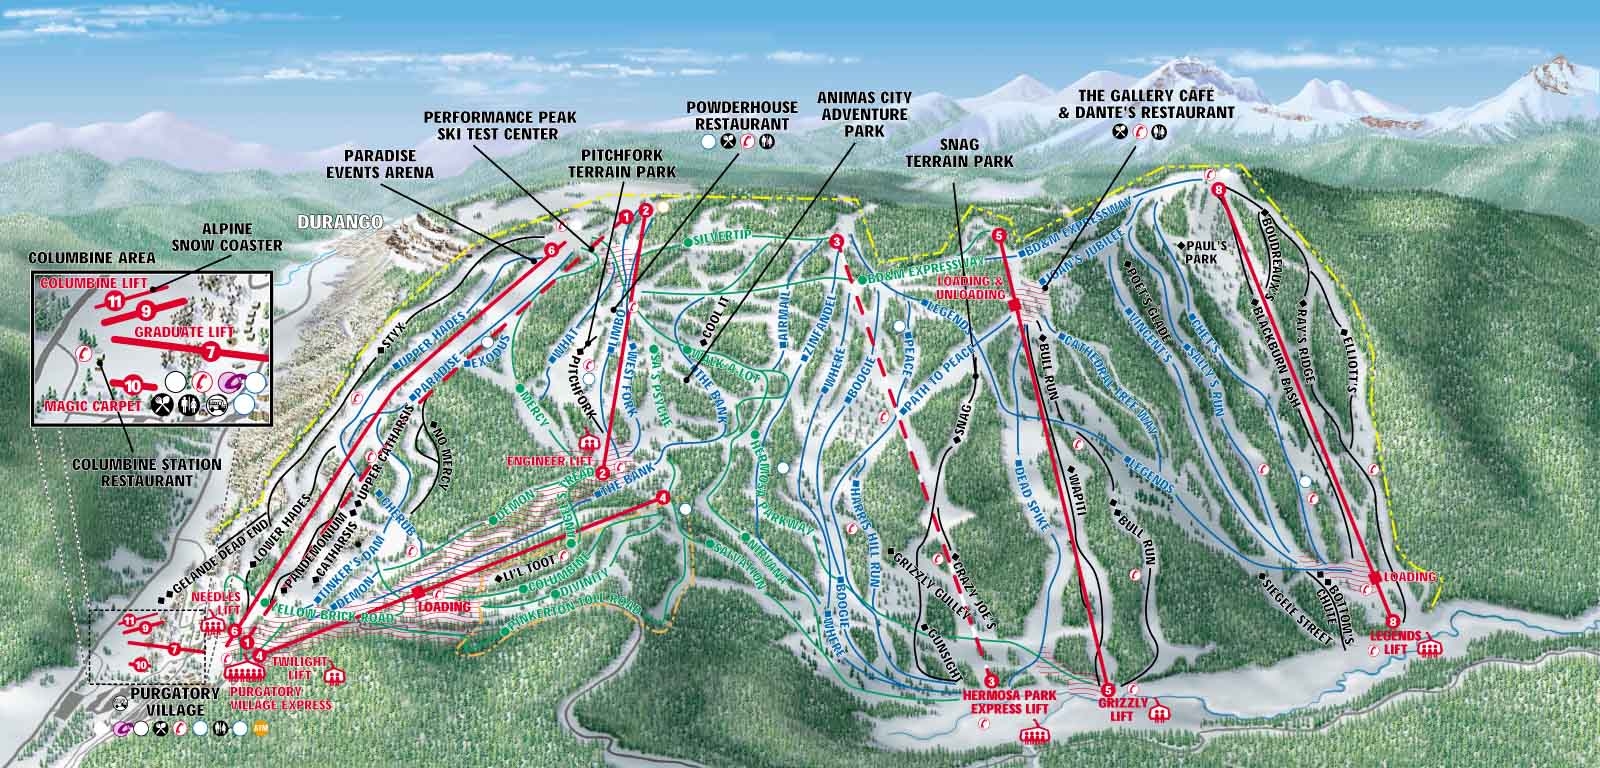 Purgatory Durango Mountain Resort SkiMaporg - Map of colorado ski resorts and cities